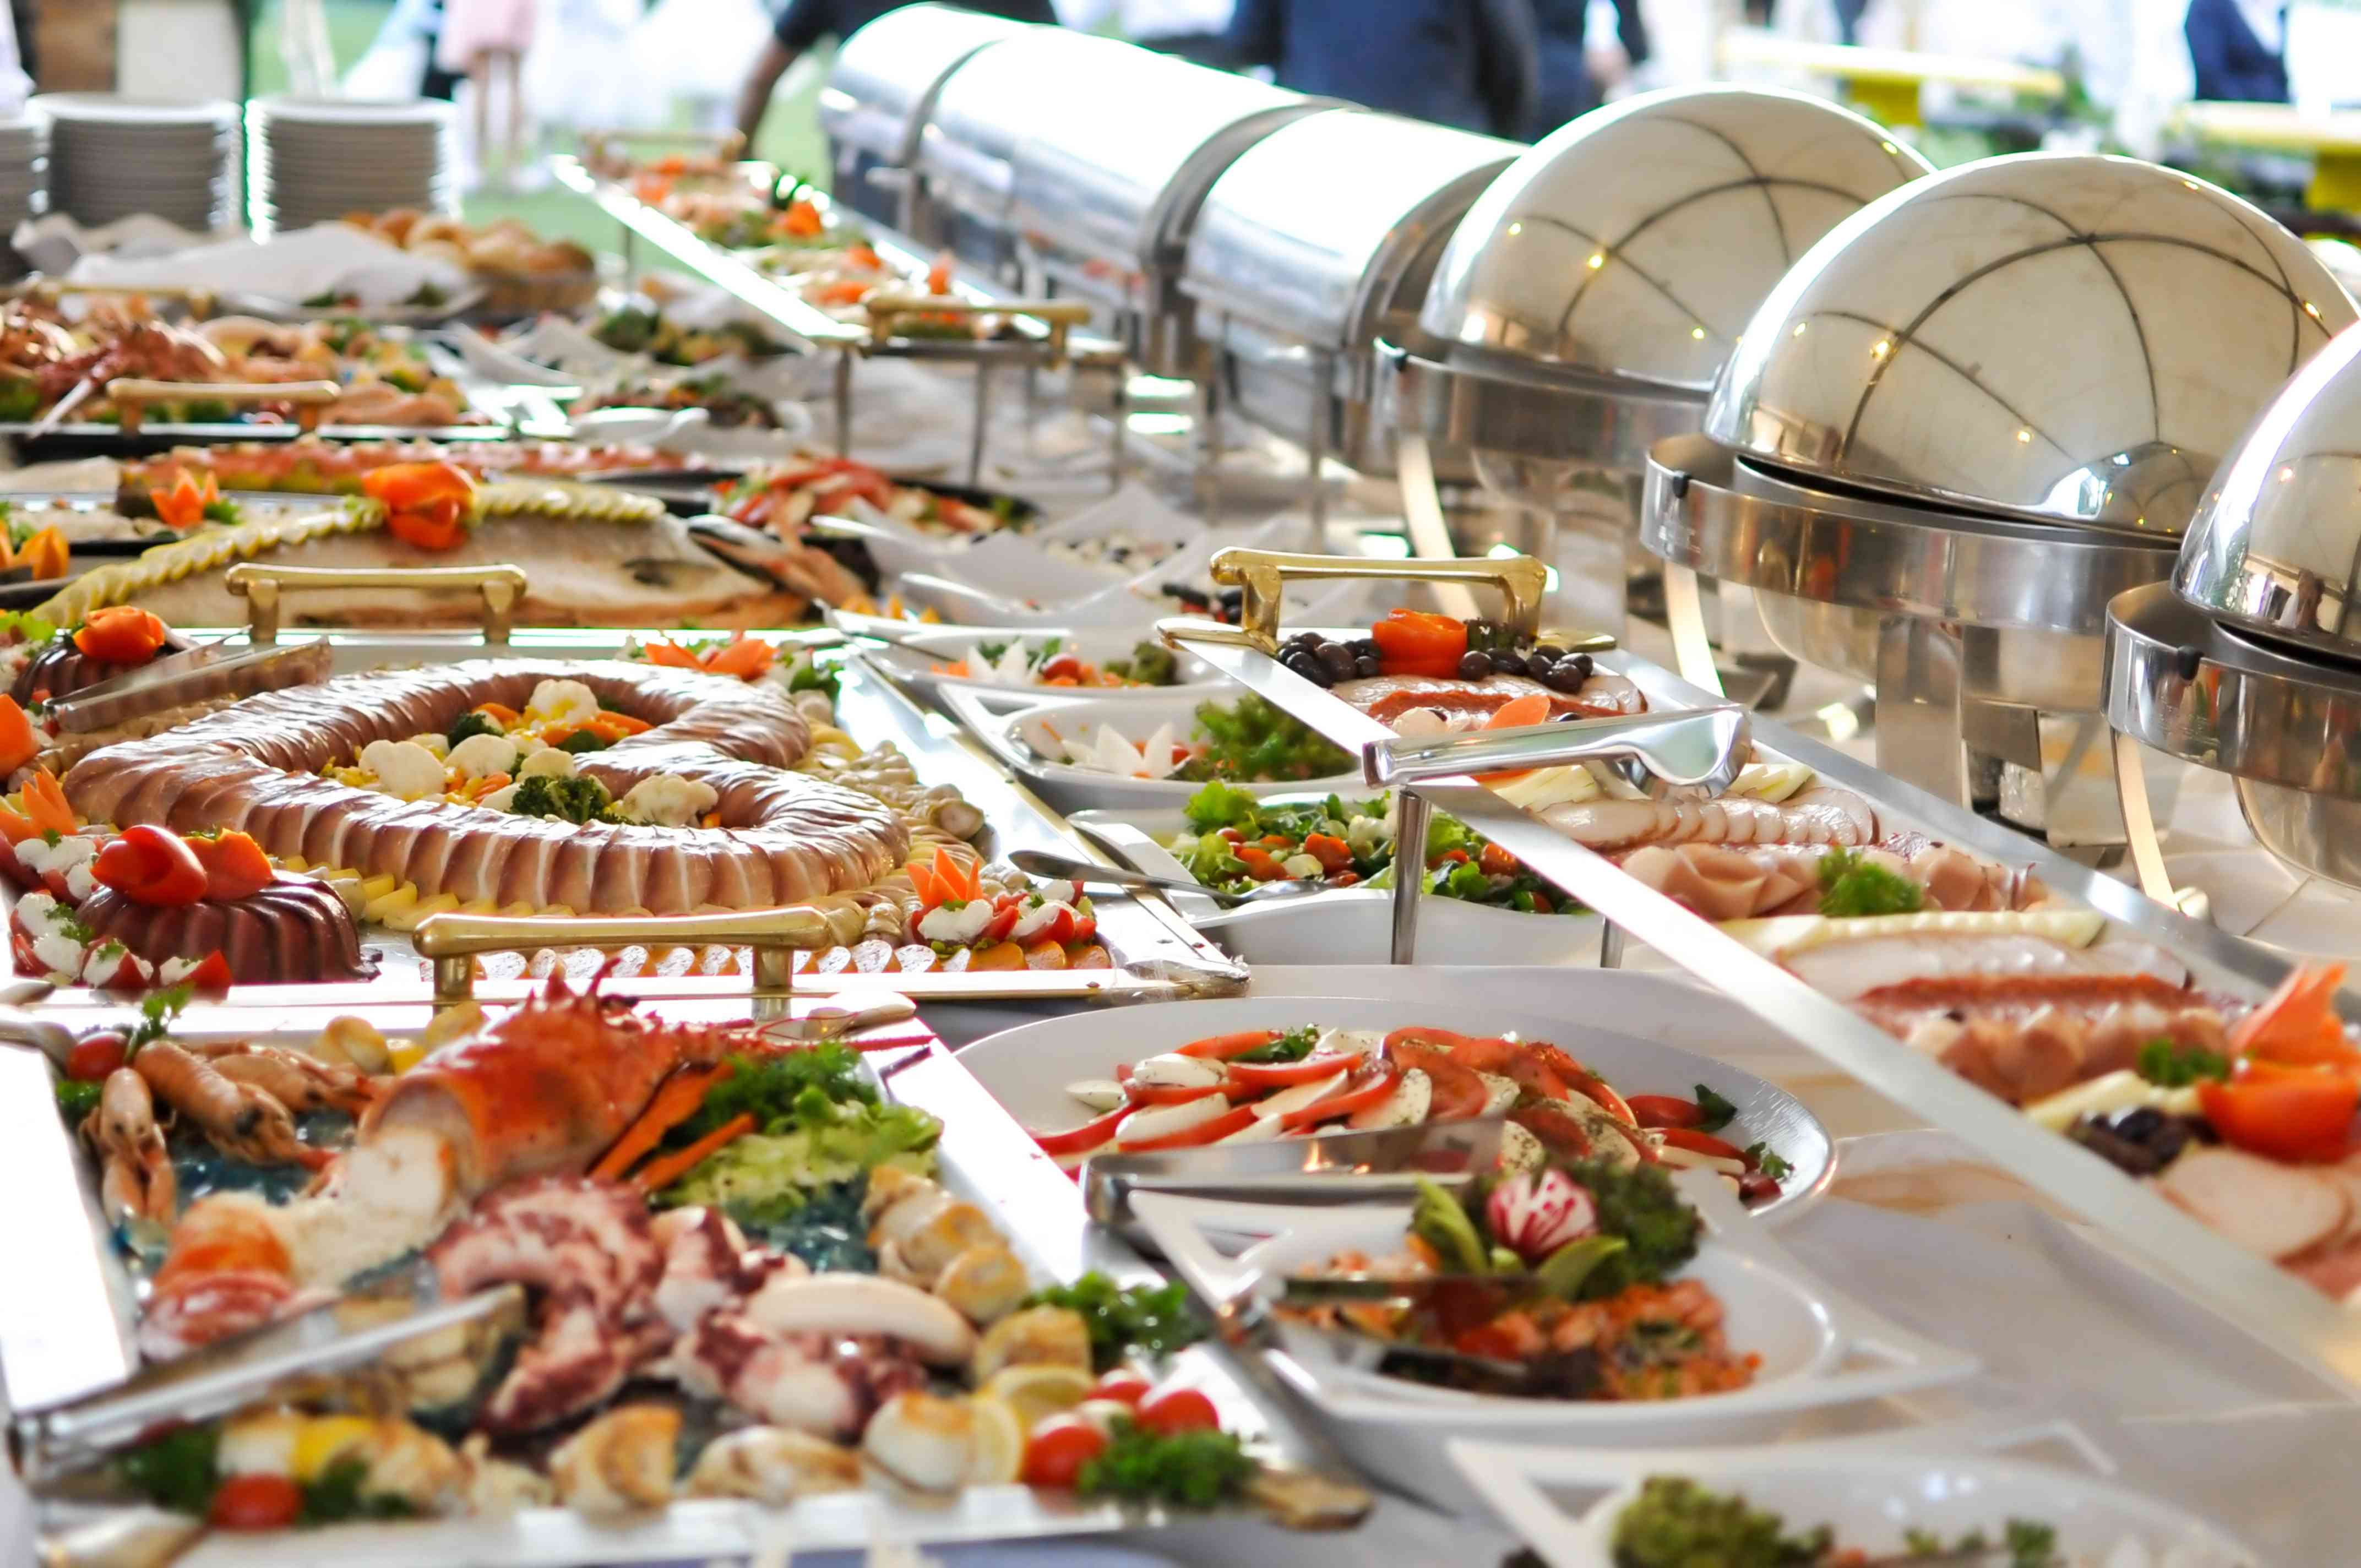 Catered food buffet line